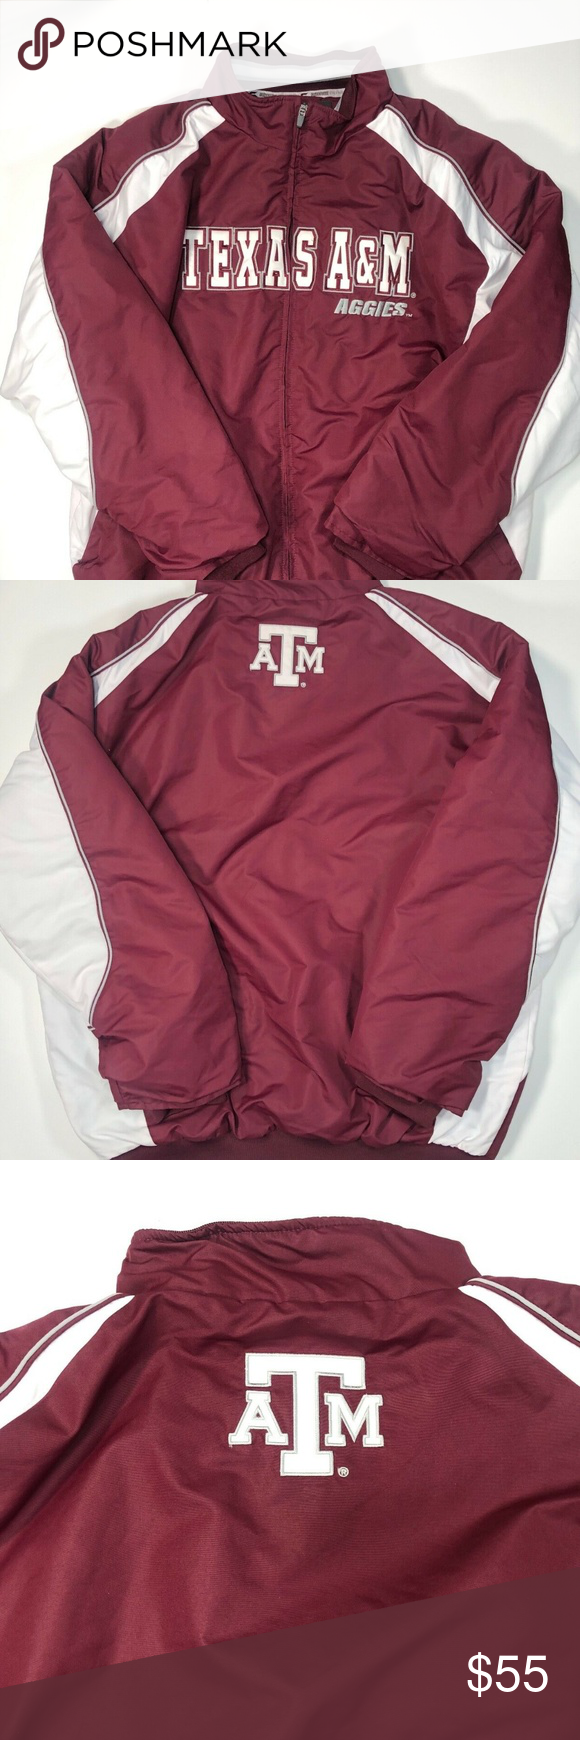 Texas A M A Puffer Jacket Full Zipper Size 3xl Measurements And Details Available On The Pictures Reasonable Offers Ar Jackets Puffer Jackets Clothes Design [ 1740 x 580 Pixel ]